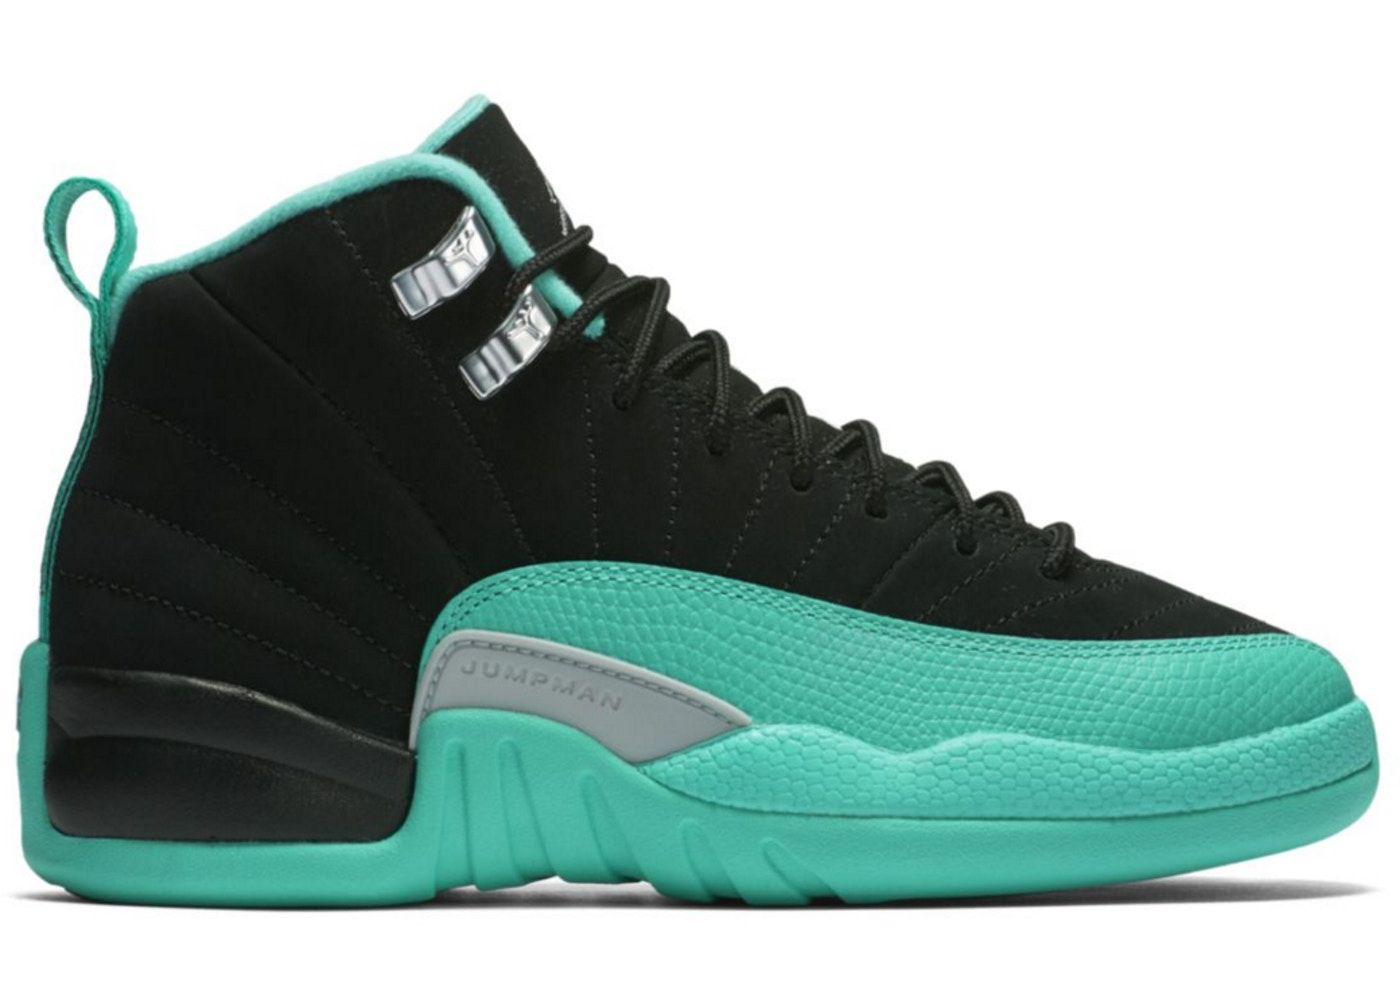 1549f8db Check out the Jordan 12 Retro Hyper Jade (GS) available on StockX ...